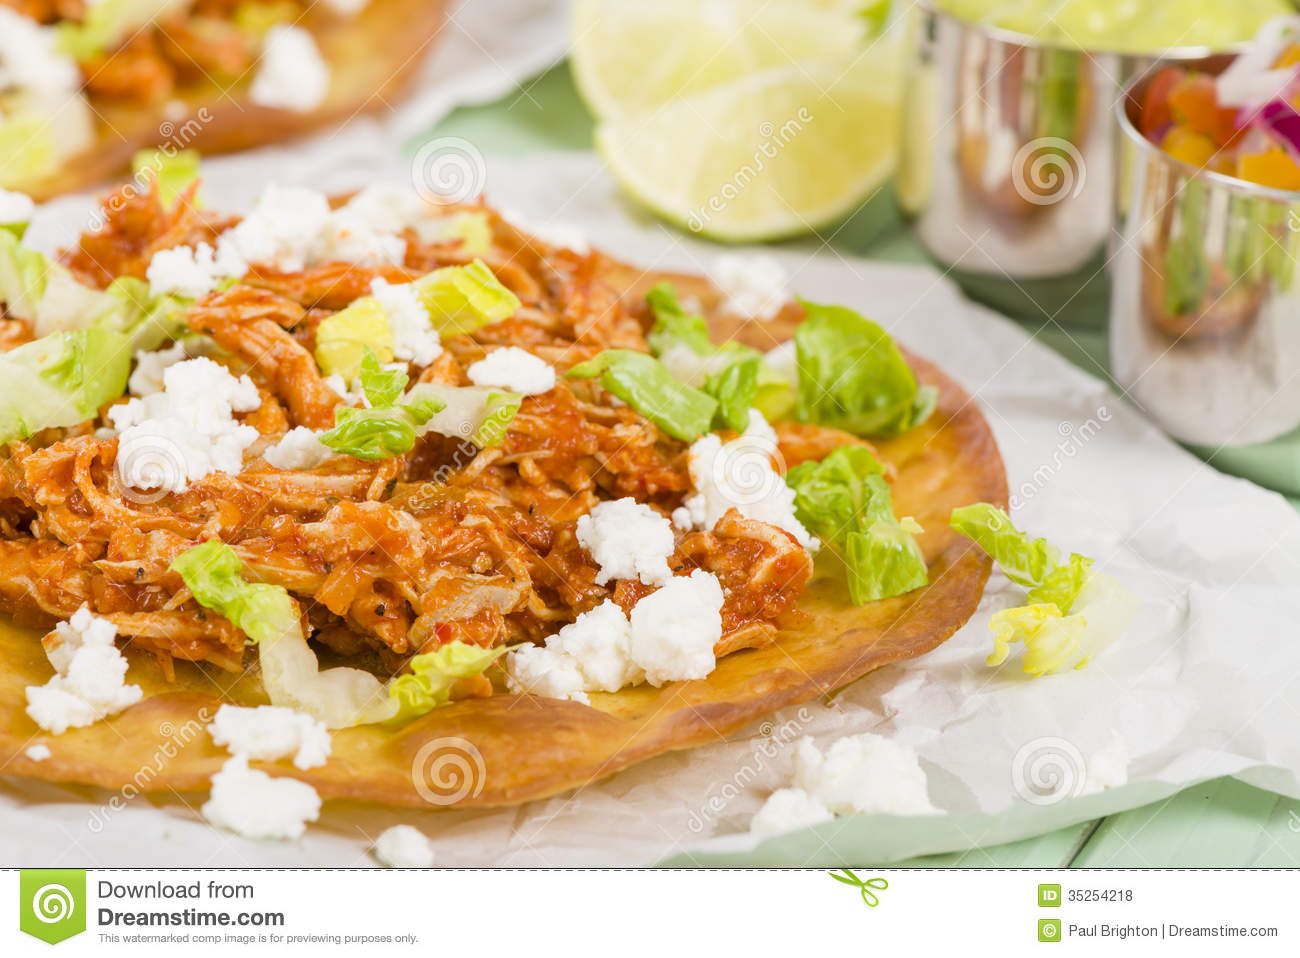 ... tortillas crispy tortillas with crispy tortillas with guacamole with